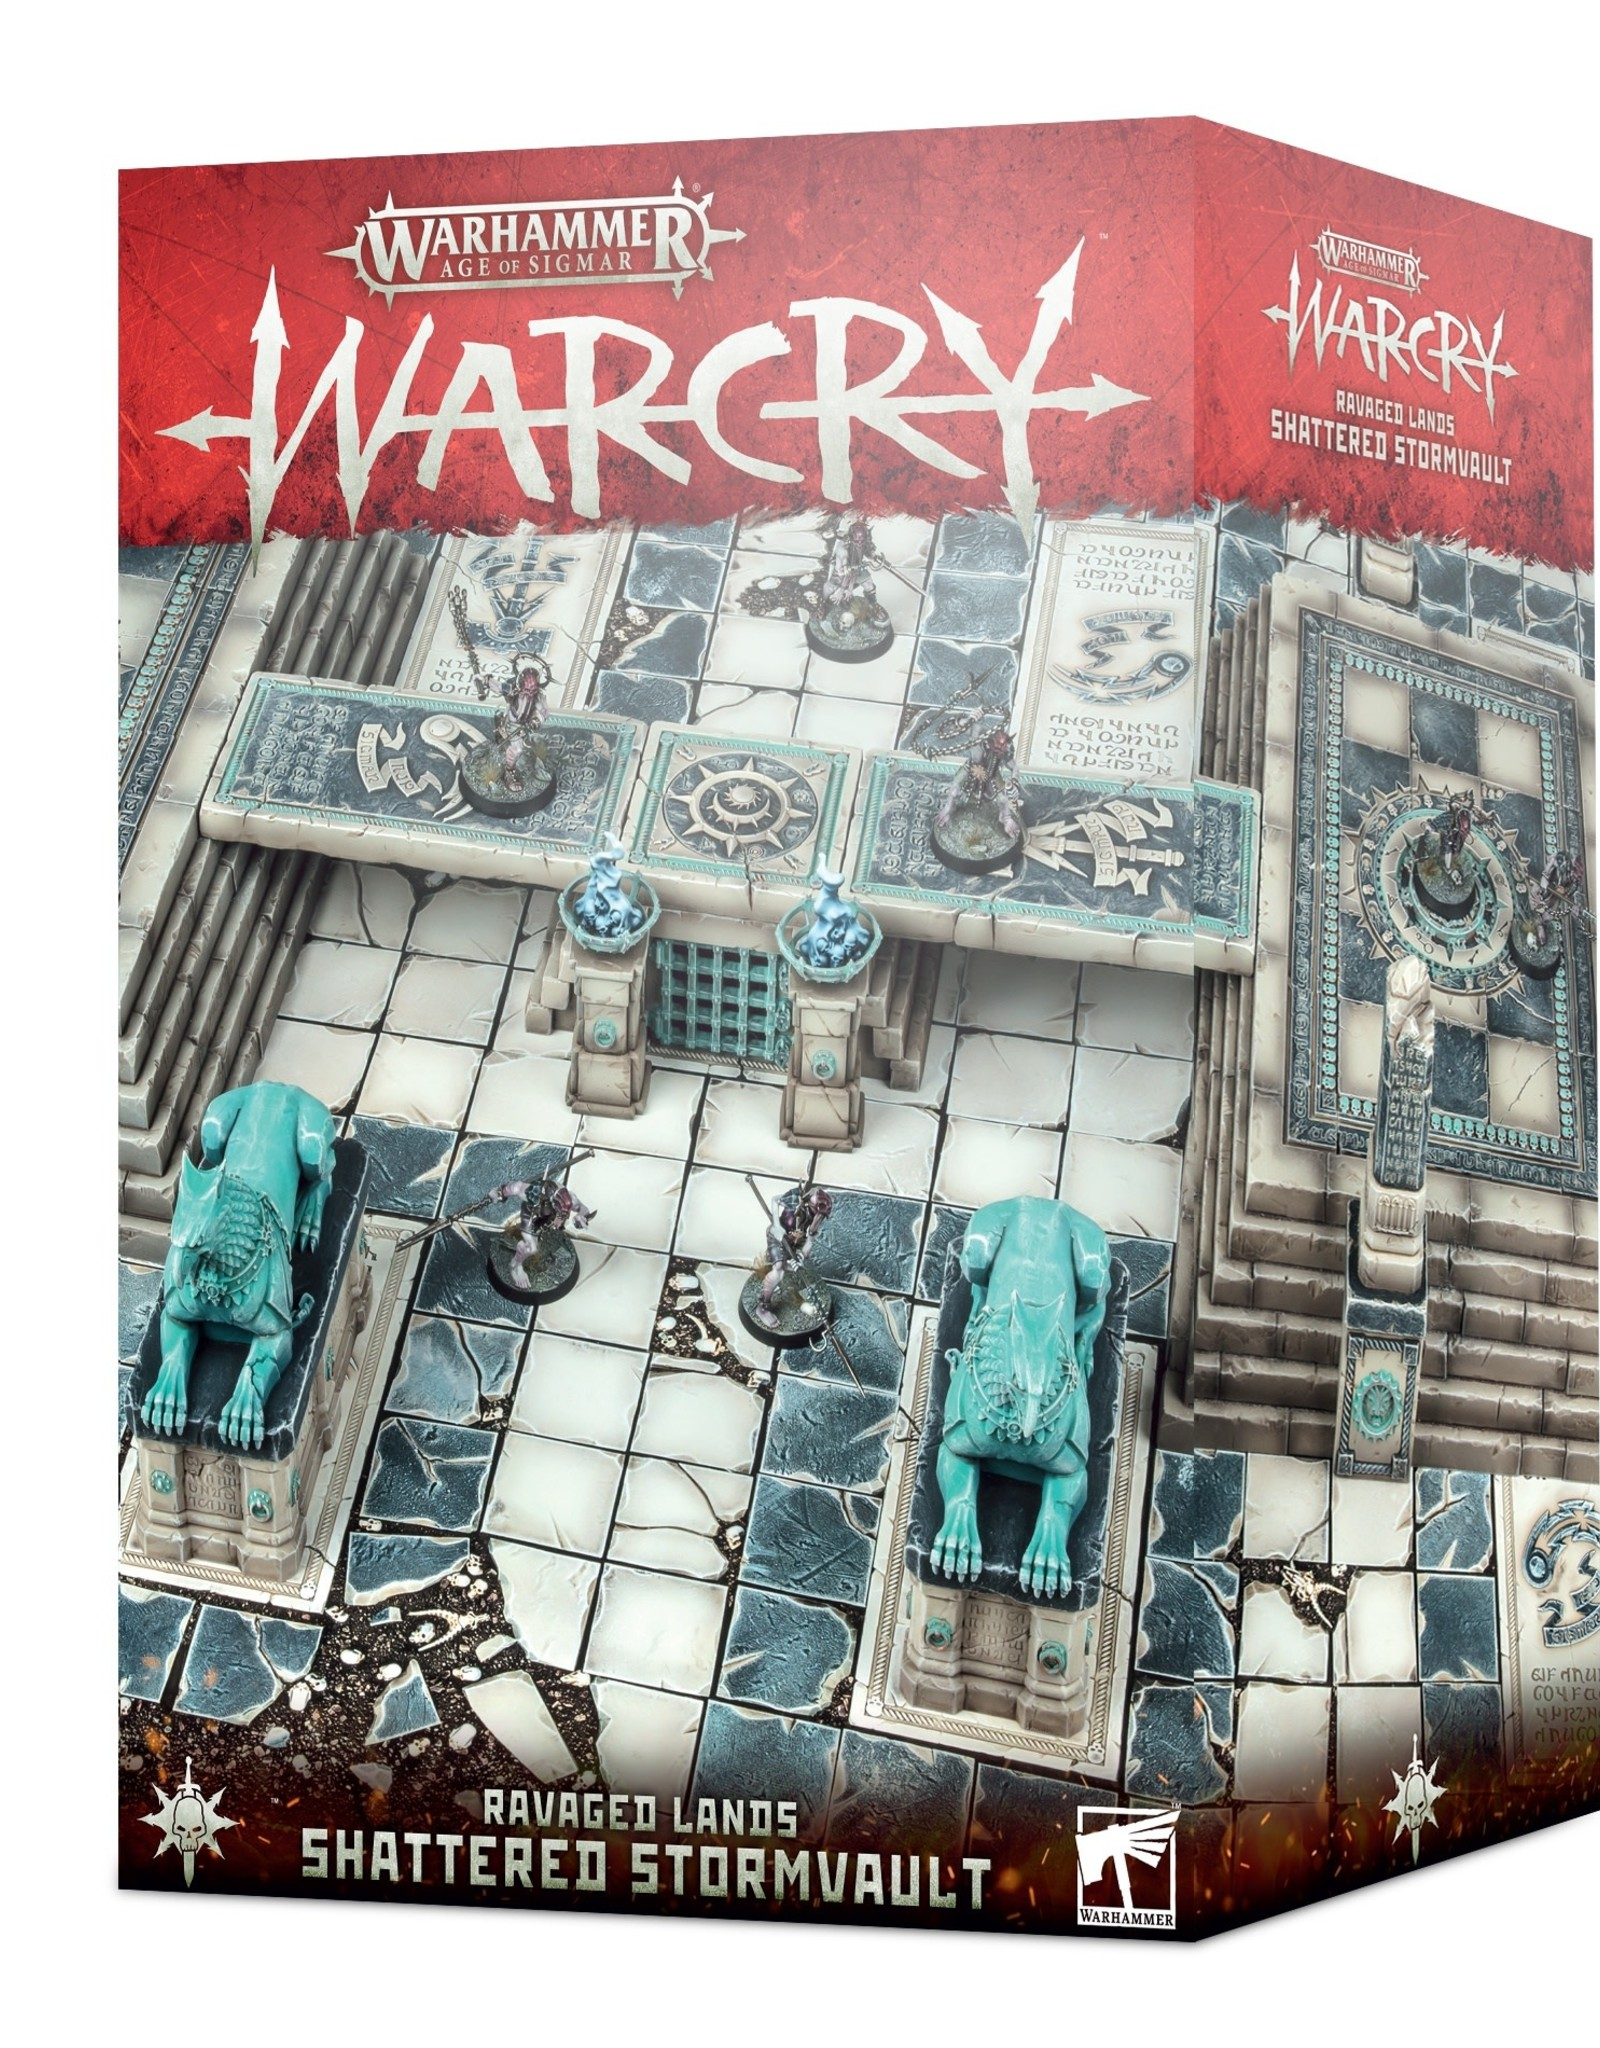 WarCry Warcry: Shattered Stormvault